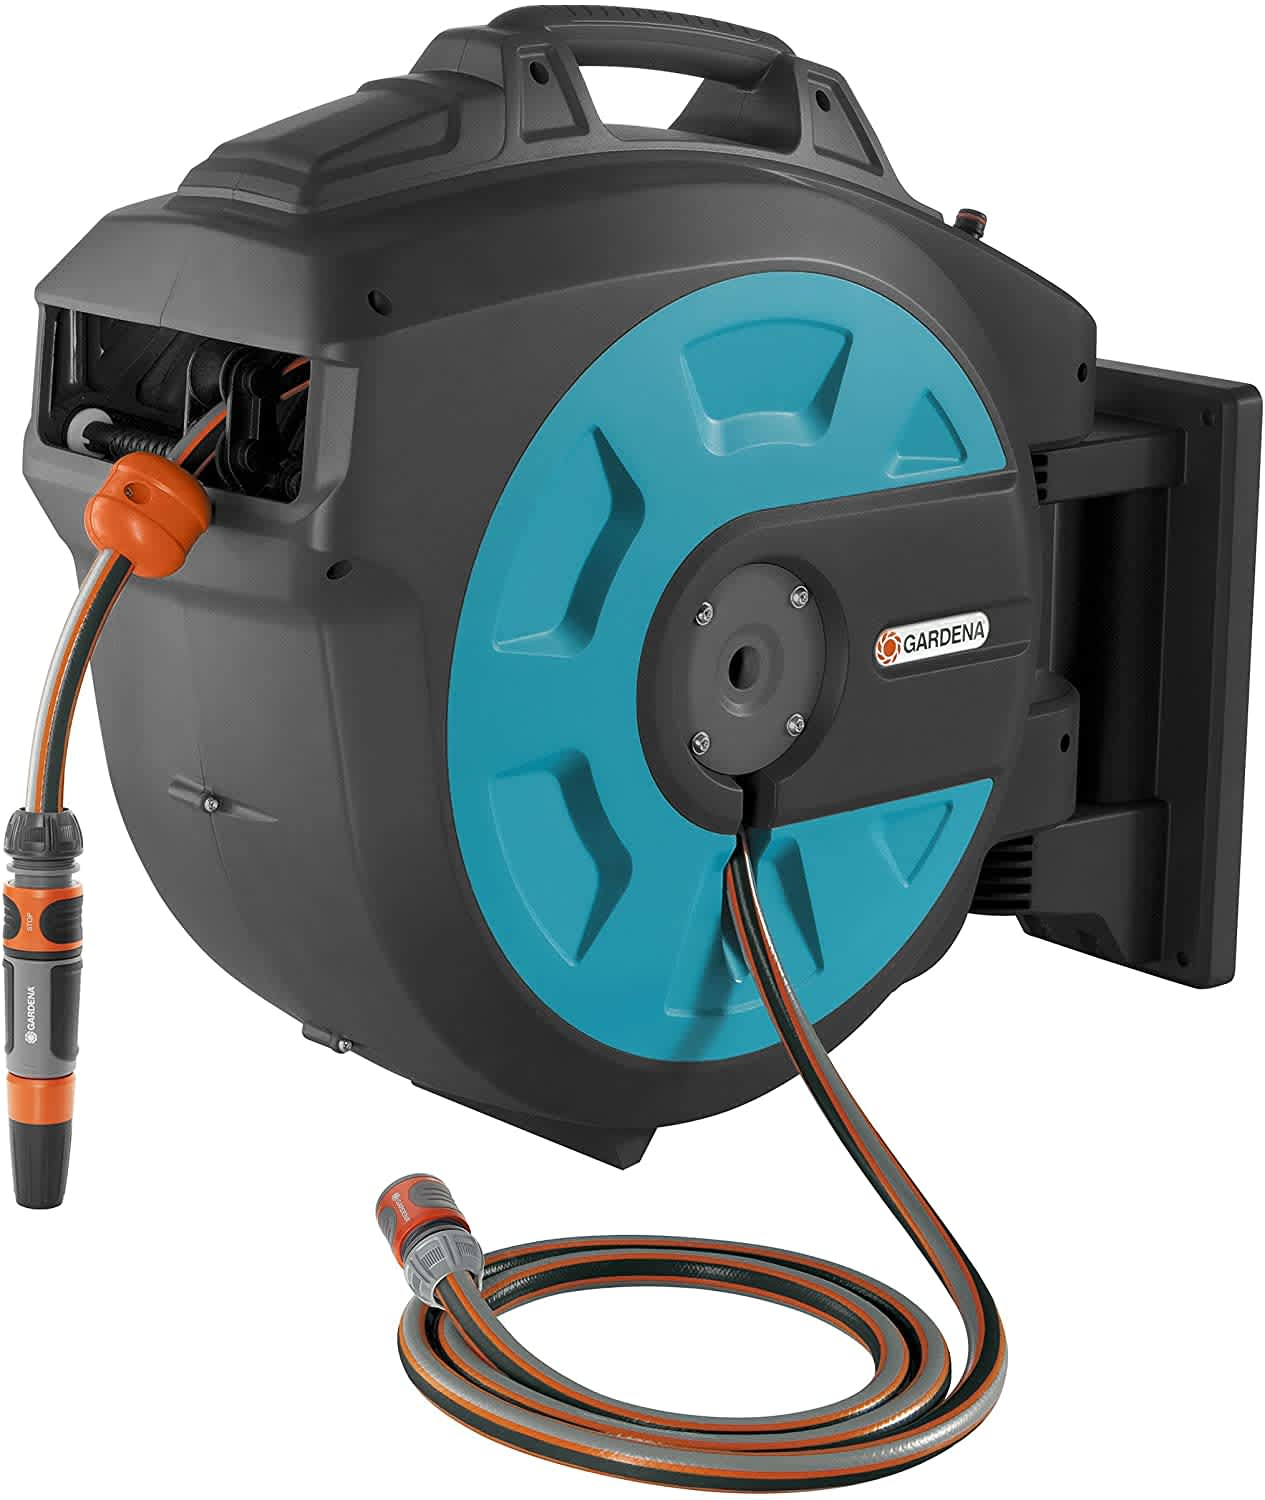 Gardena 115ft. Retractable Hose Reel w/ Wall Mount